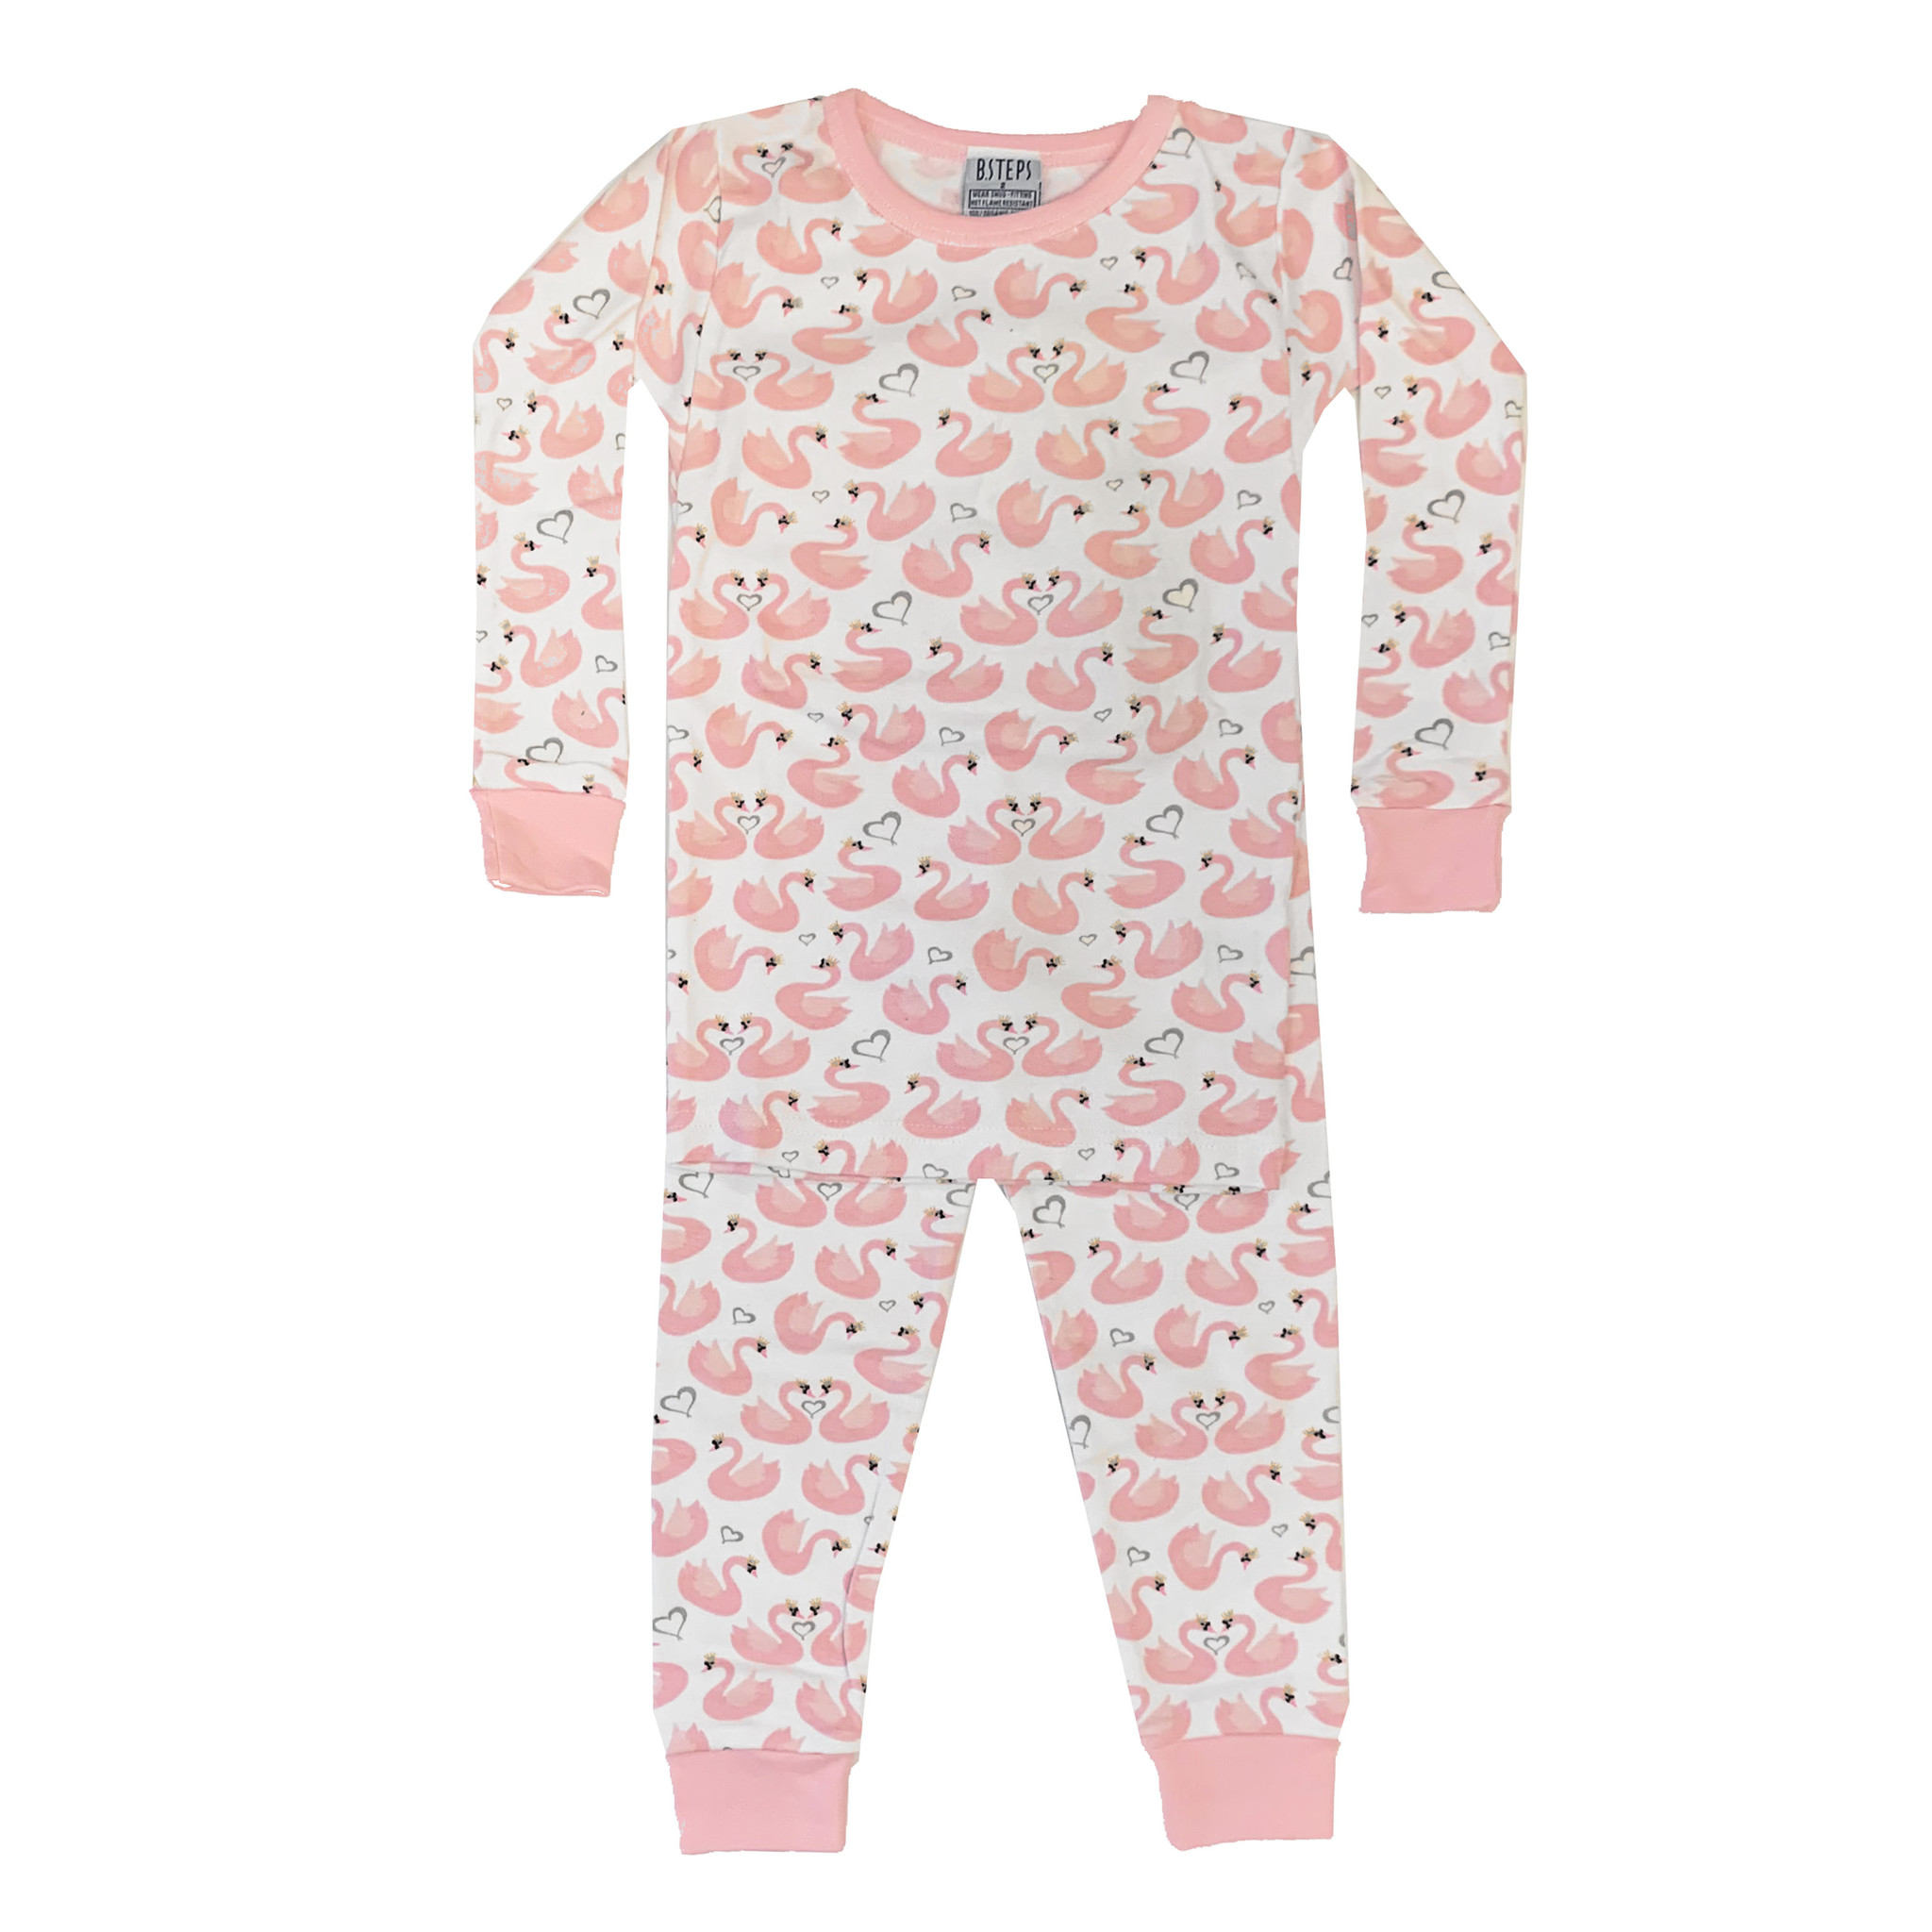 Baby Steps Pink Swans Infant PJ Set